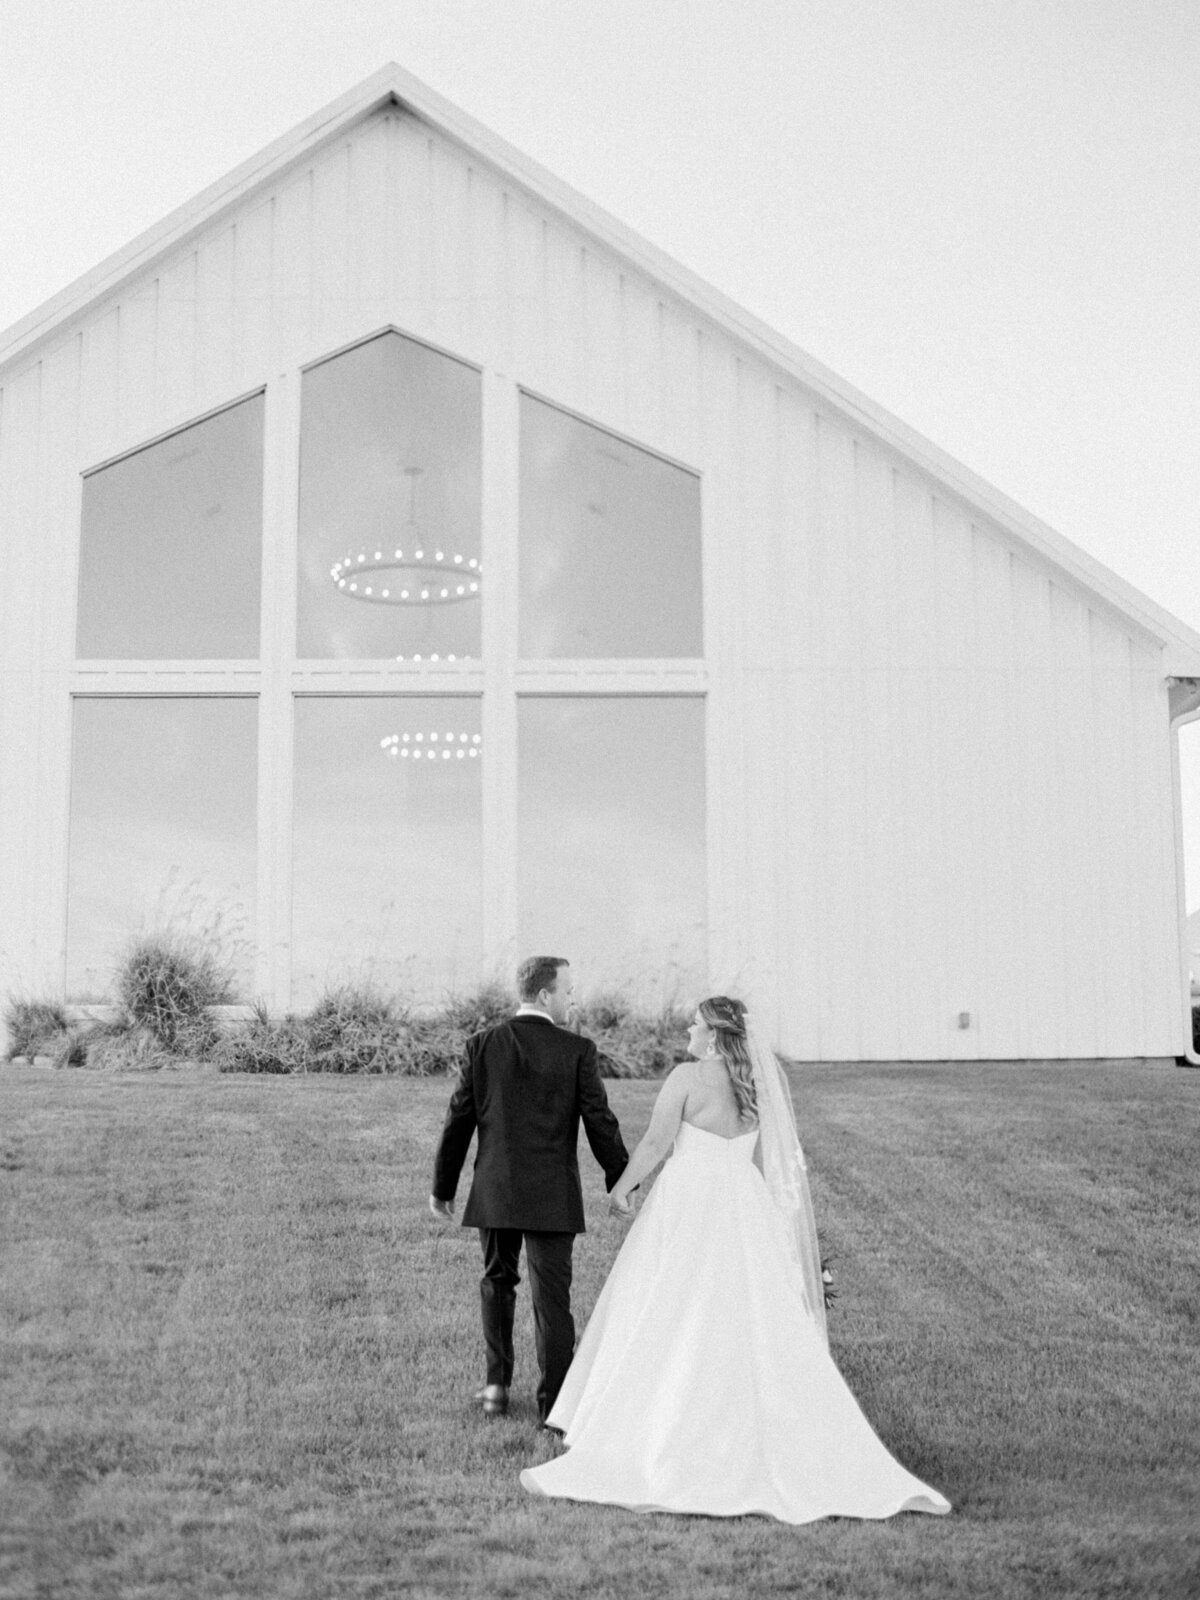 the-farmhouse-wedding-houston-texas-wedding-photographer-mackenzie-reiter-photography-88